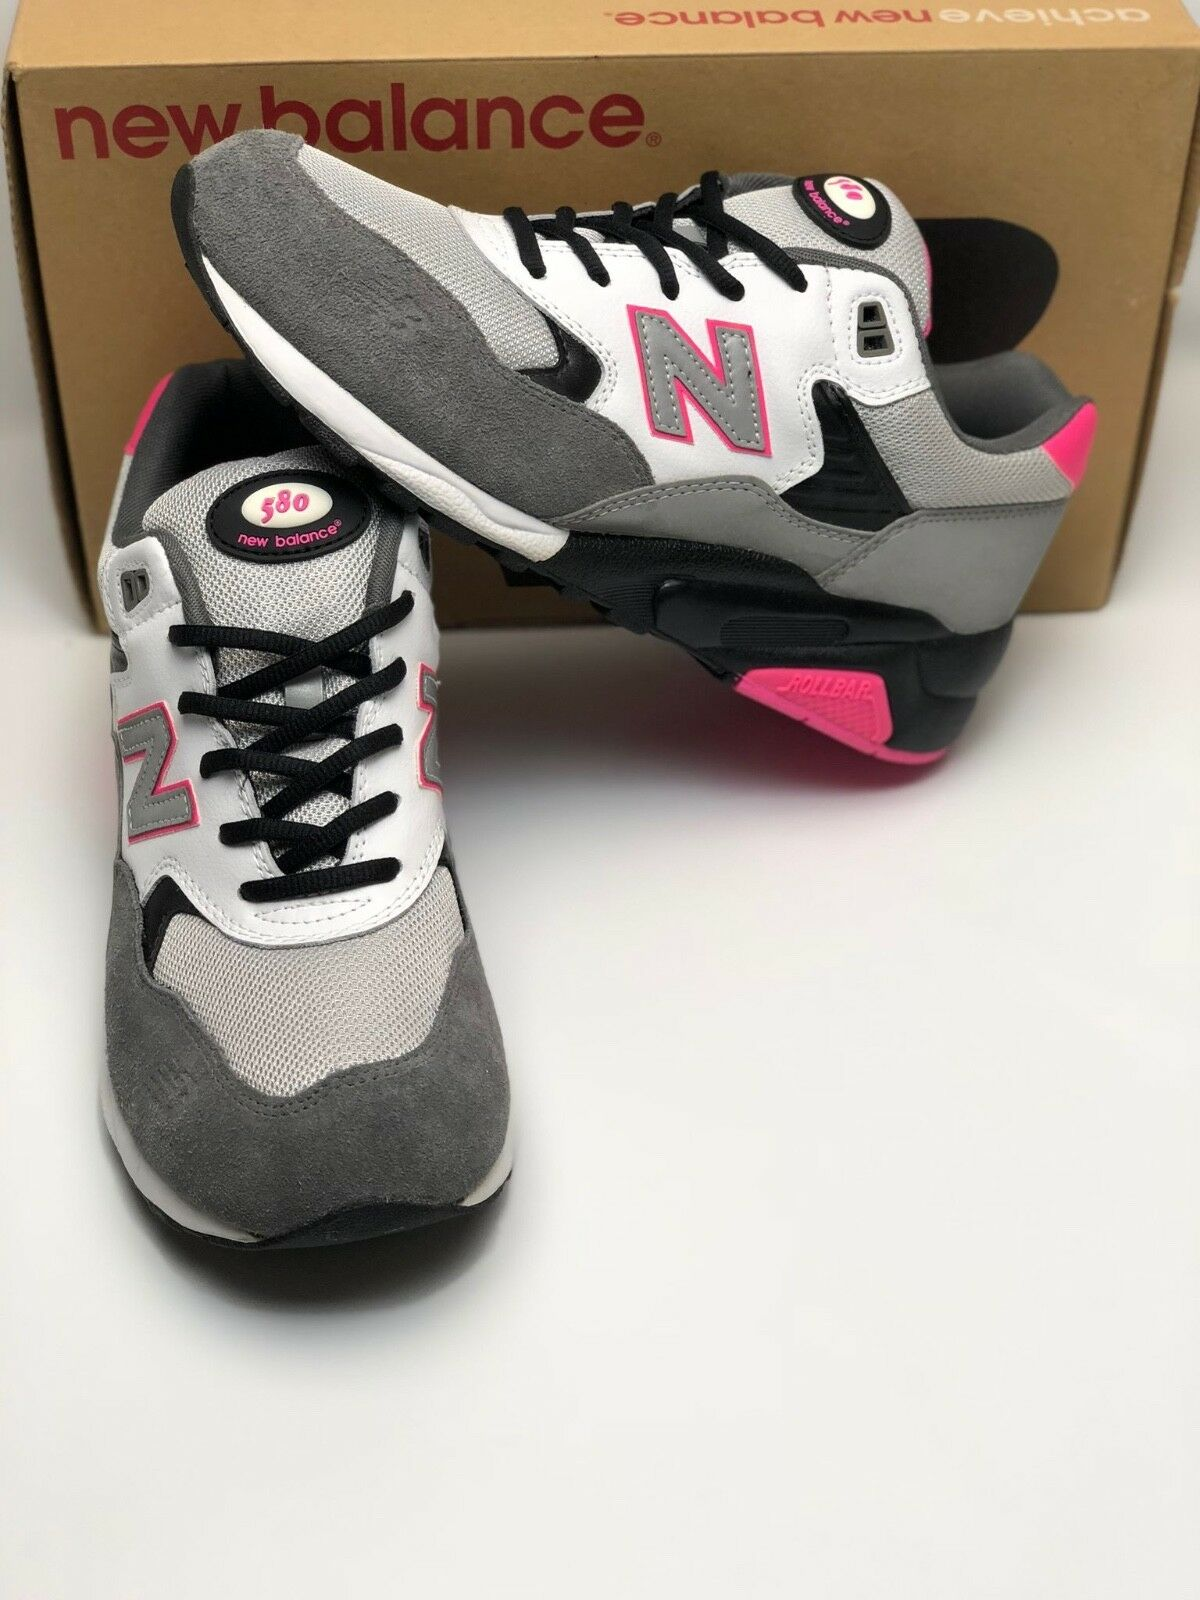 New Balance MT580 3M MT580HOT 580 Grey White Pink 2009 Size 10 Brand New In Box